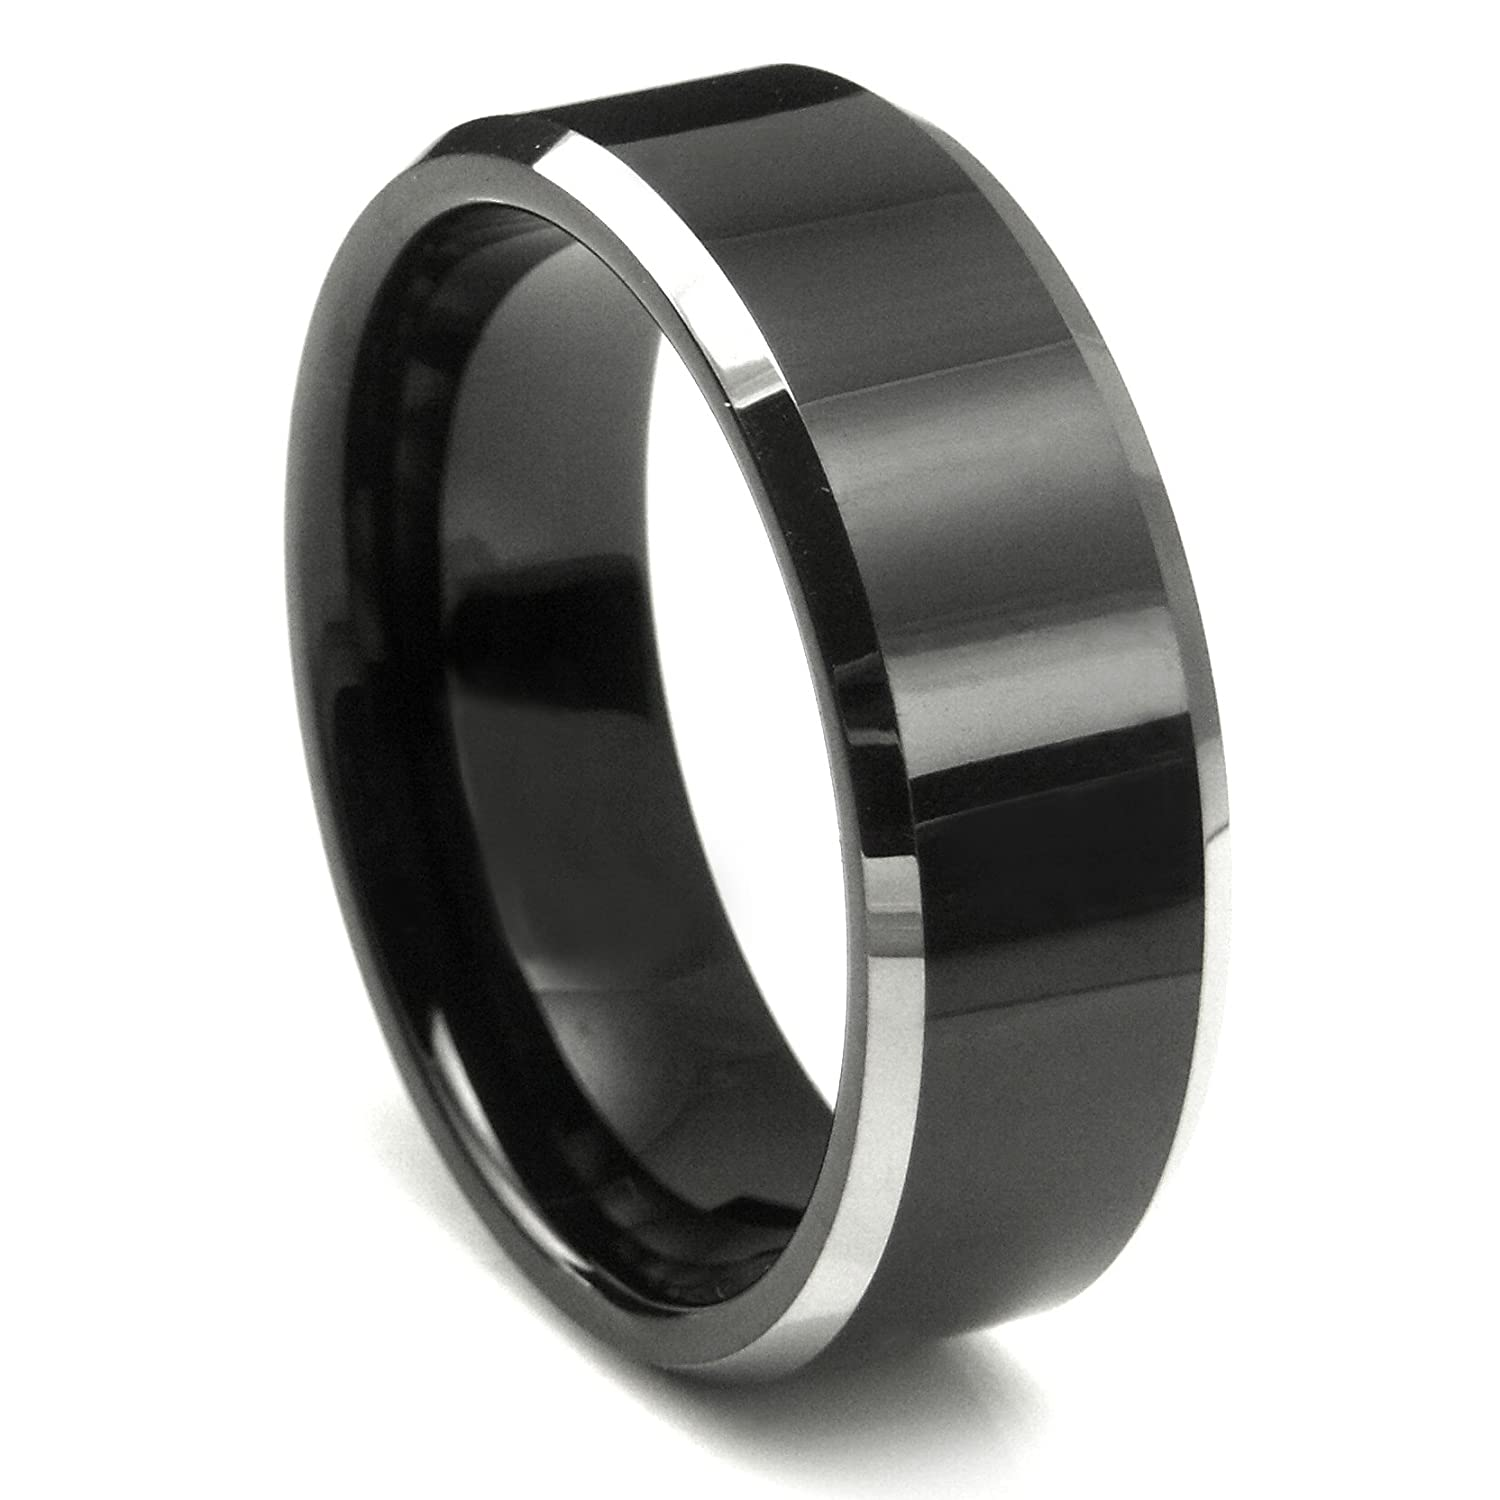 tungsten tone s wedding men rings carbide generation dome zoom home two milgrain band loading ring